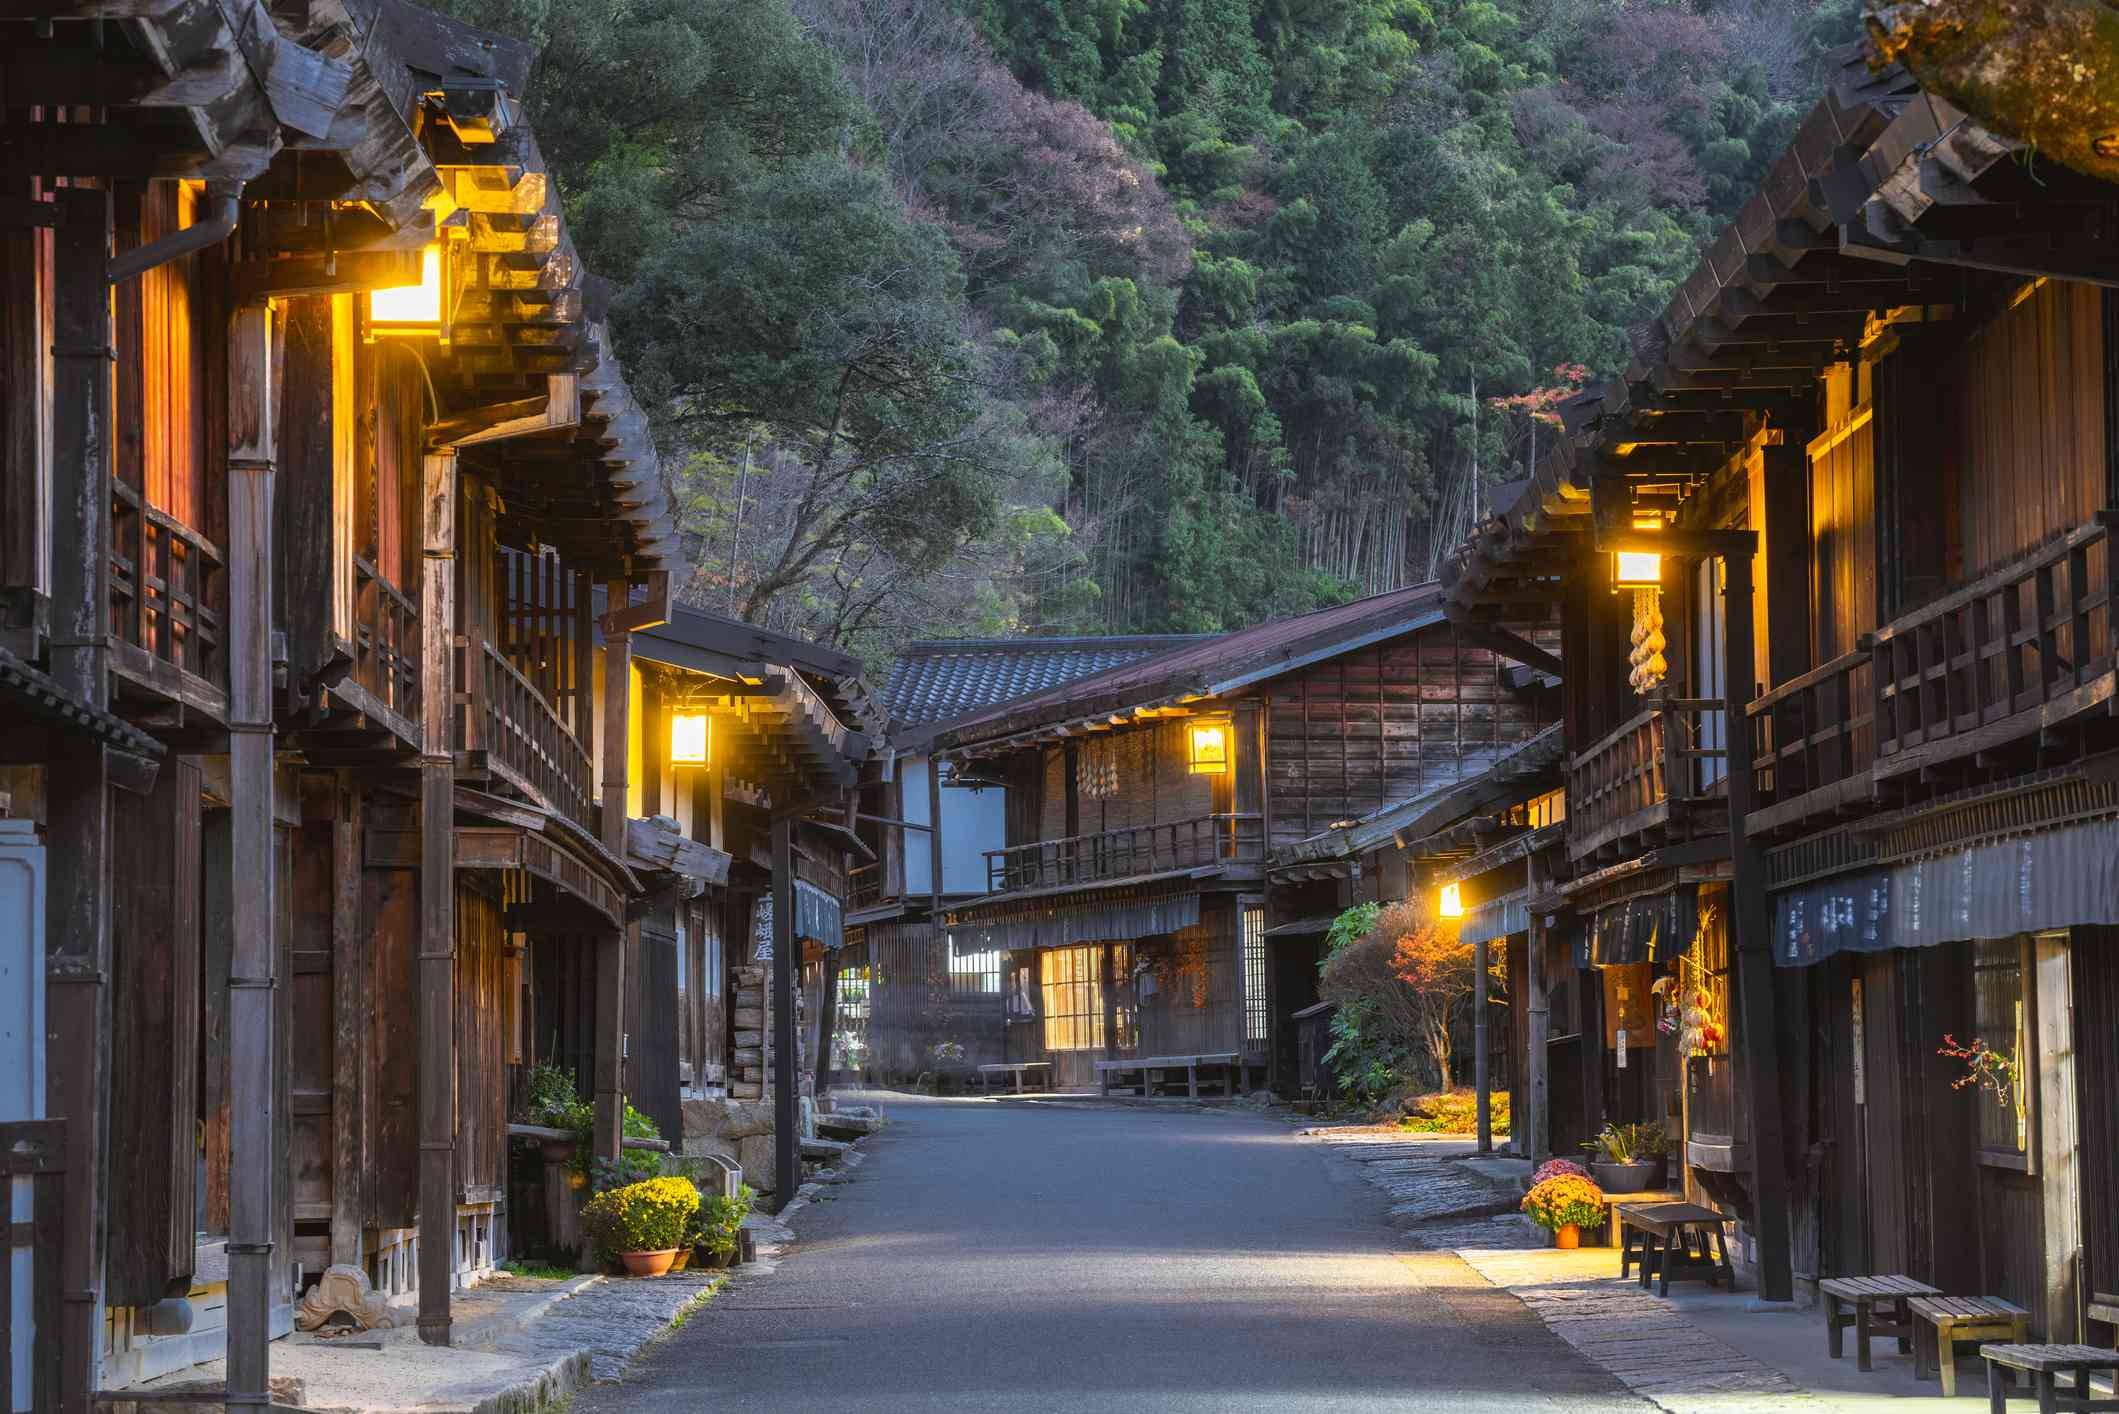 wide street with traditional two-level japanese buildings photgraphed at dusk